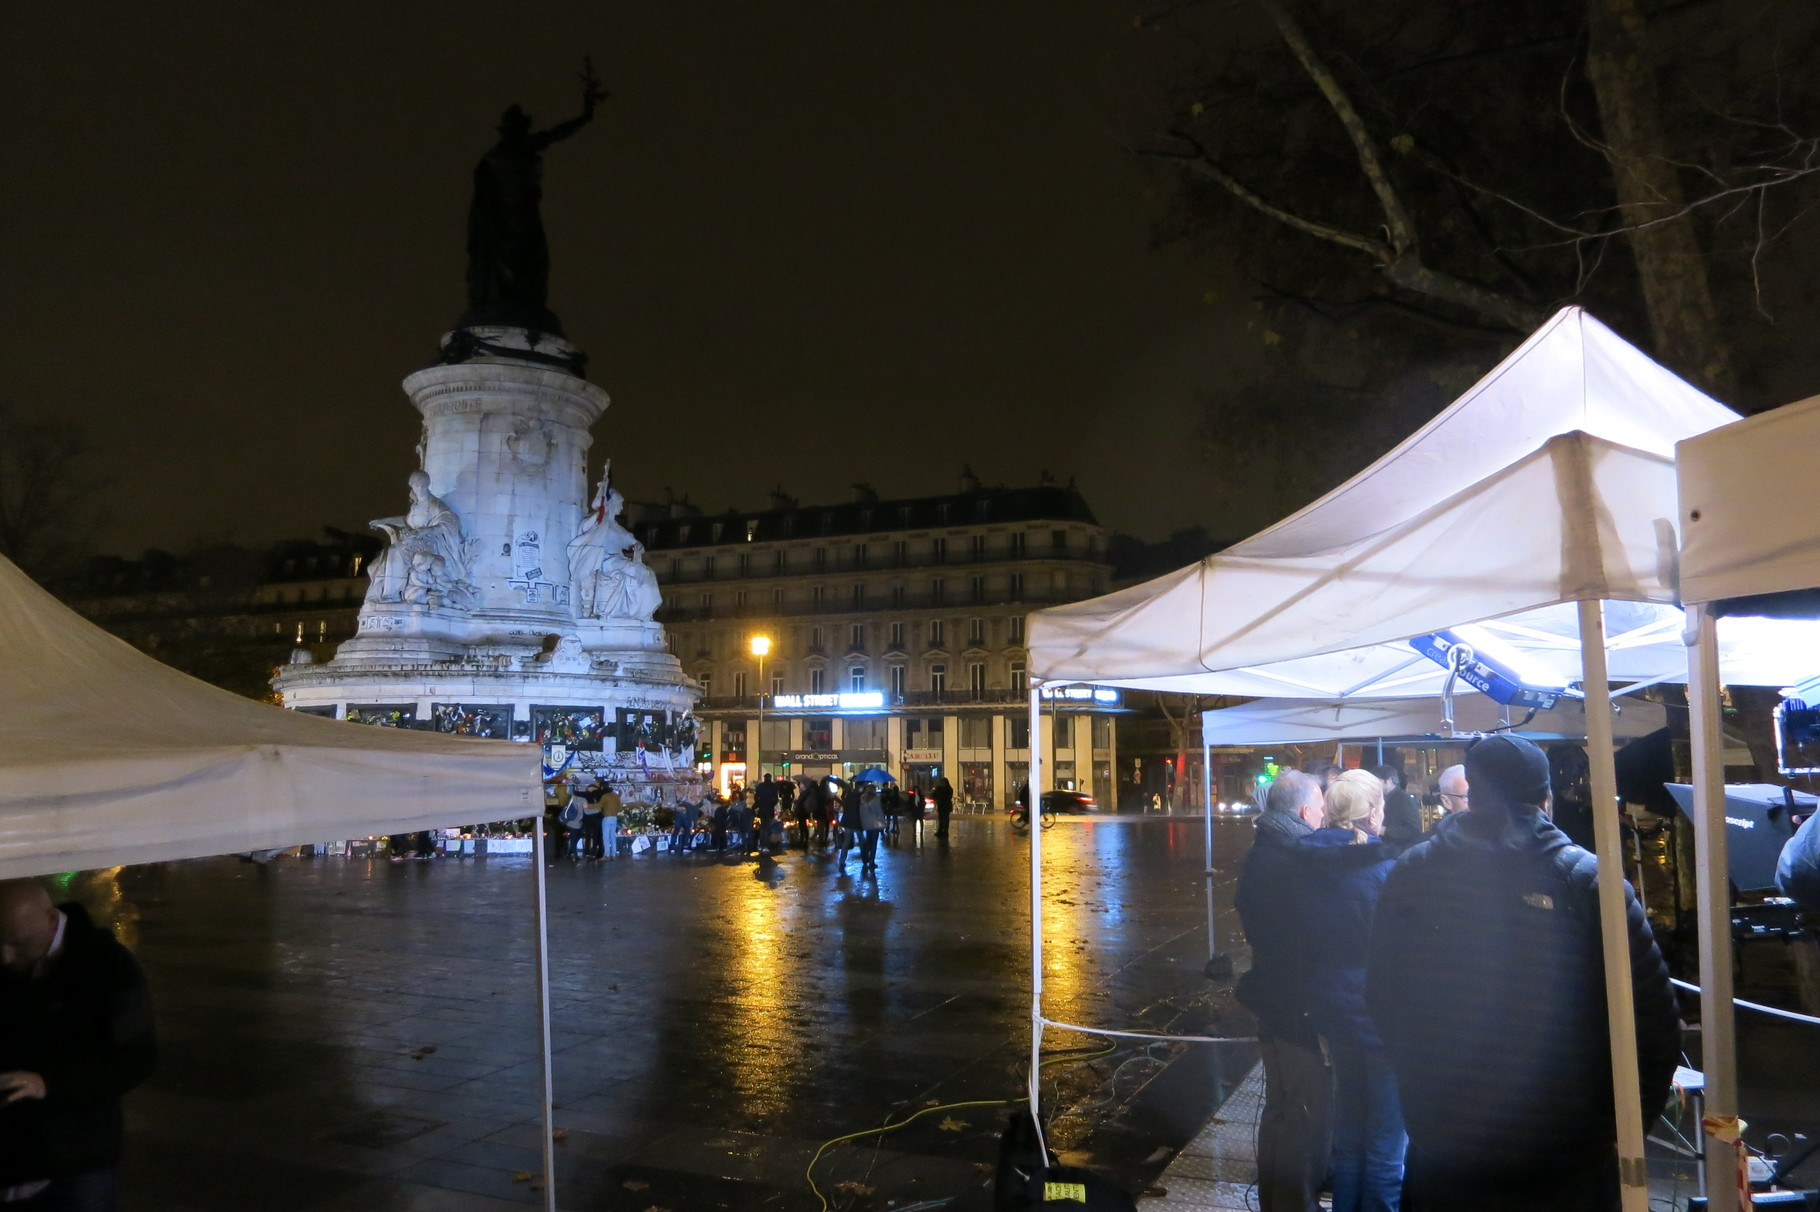 Place de la République France 20/11/2015